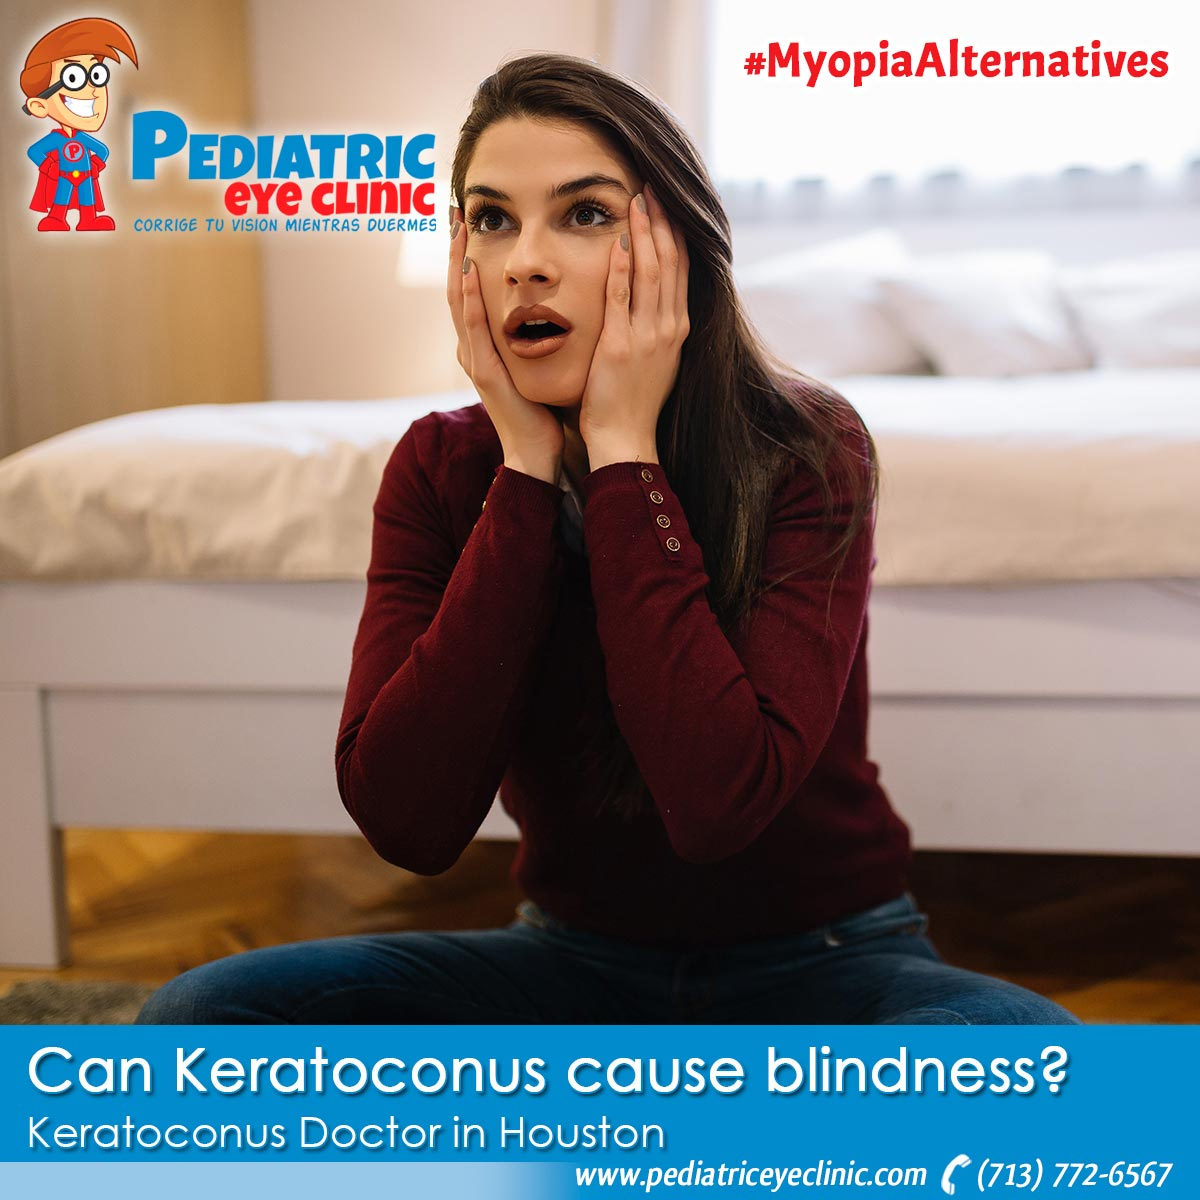 15 Keratoconus Doctor in Houston